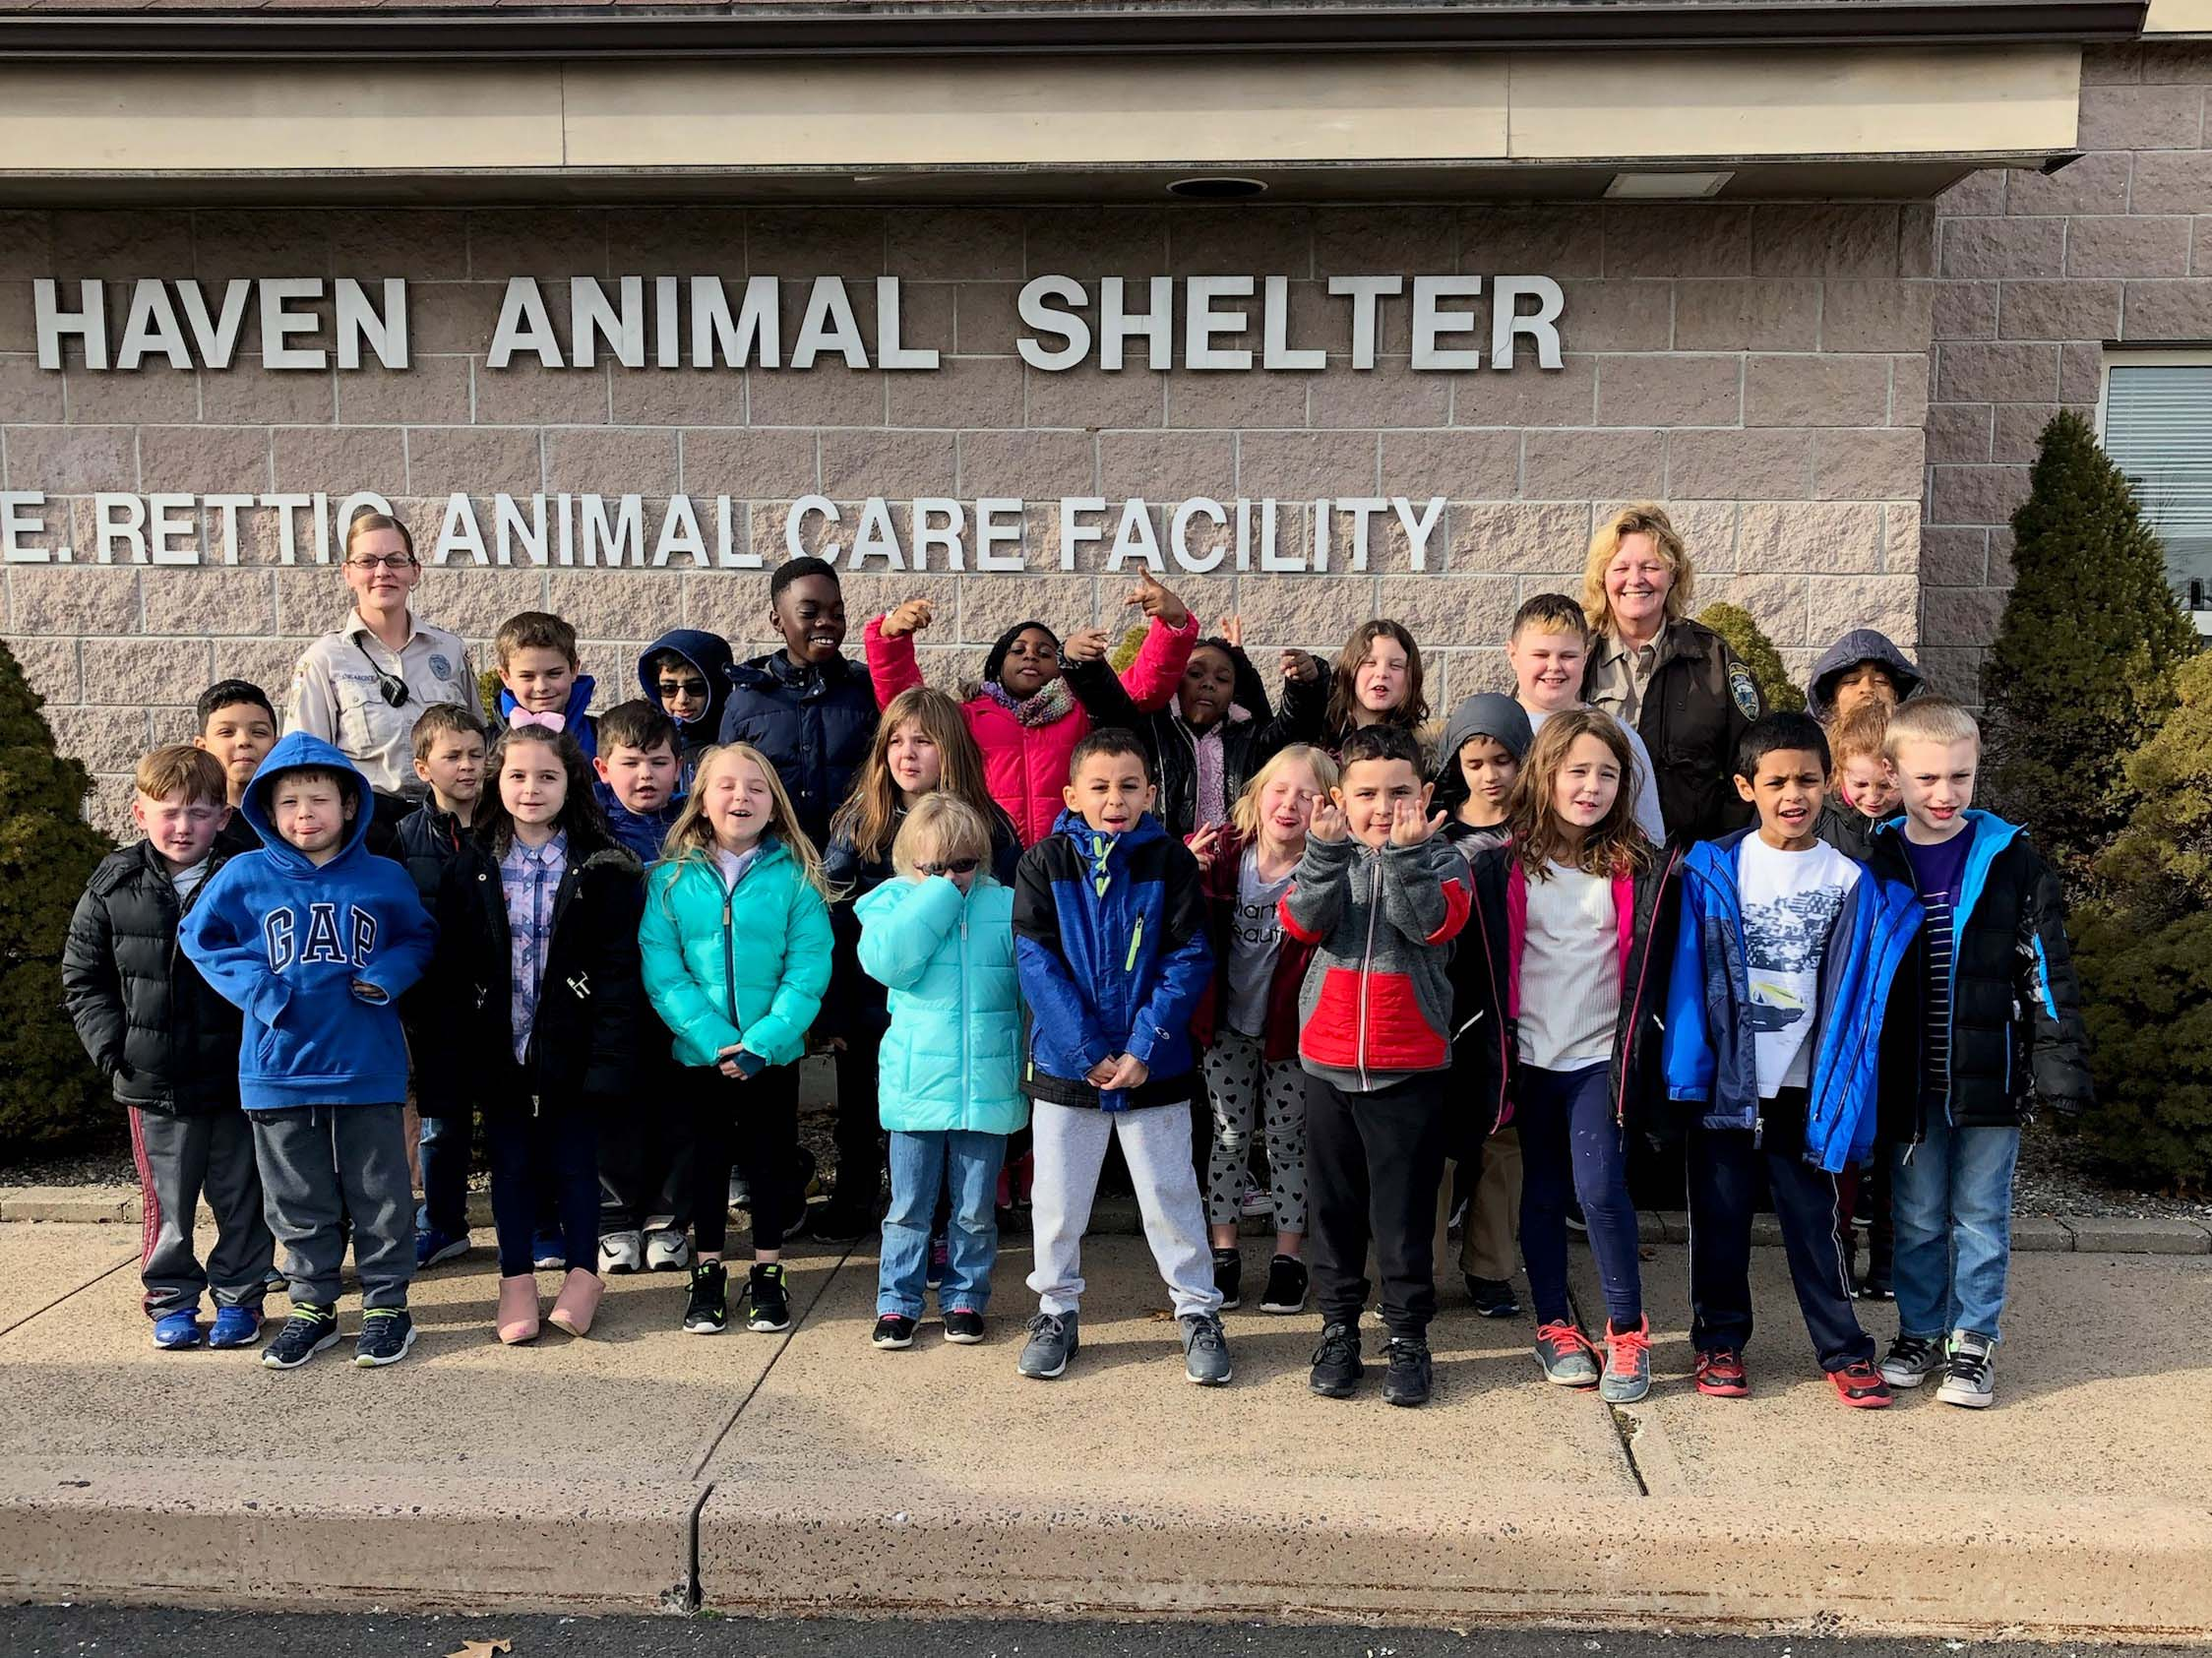 Visiting the shelter